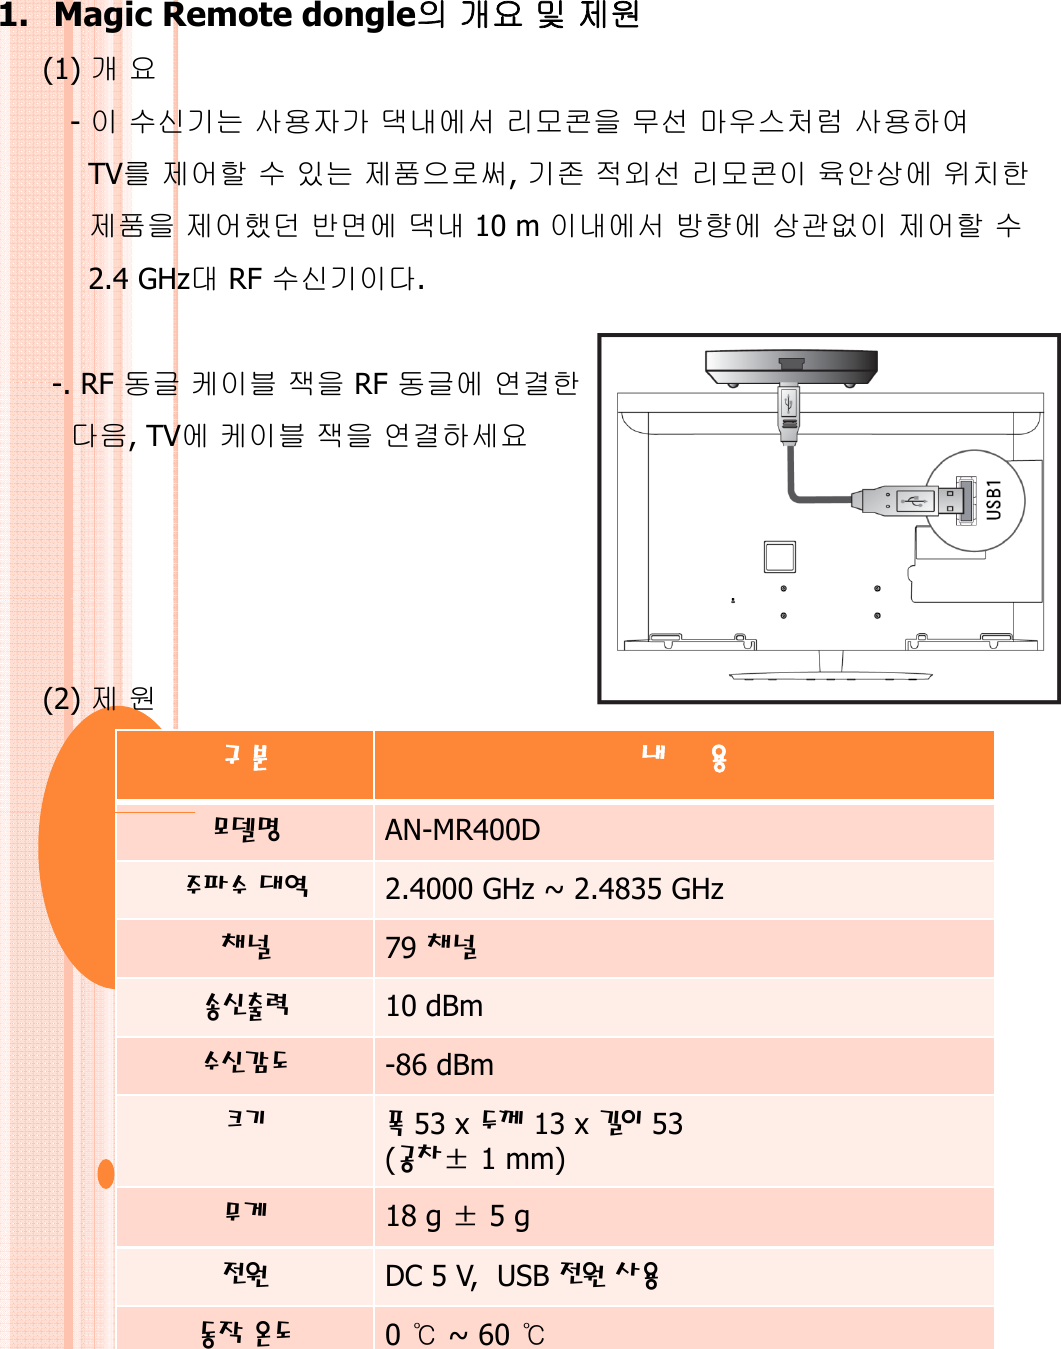 Lg electronics usa mr400d magic remote dongle user manual page 3 of lg electronics usa mr400d magic remote dongle user manual sciox Image collections